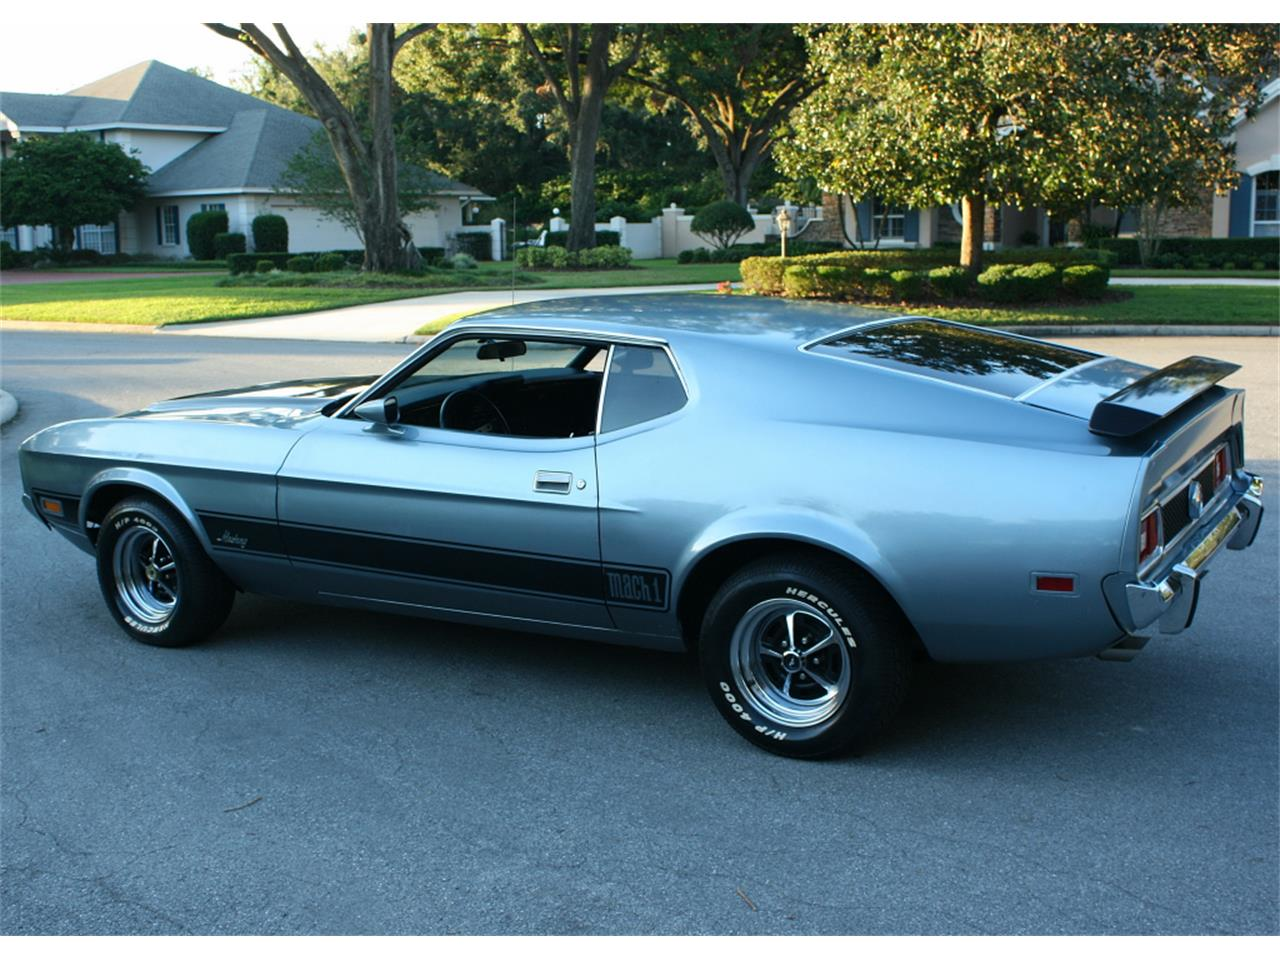 Large Picture of Classic 1973 Ford Mustang - $17,500.00 - MA11